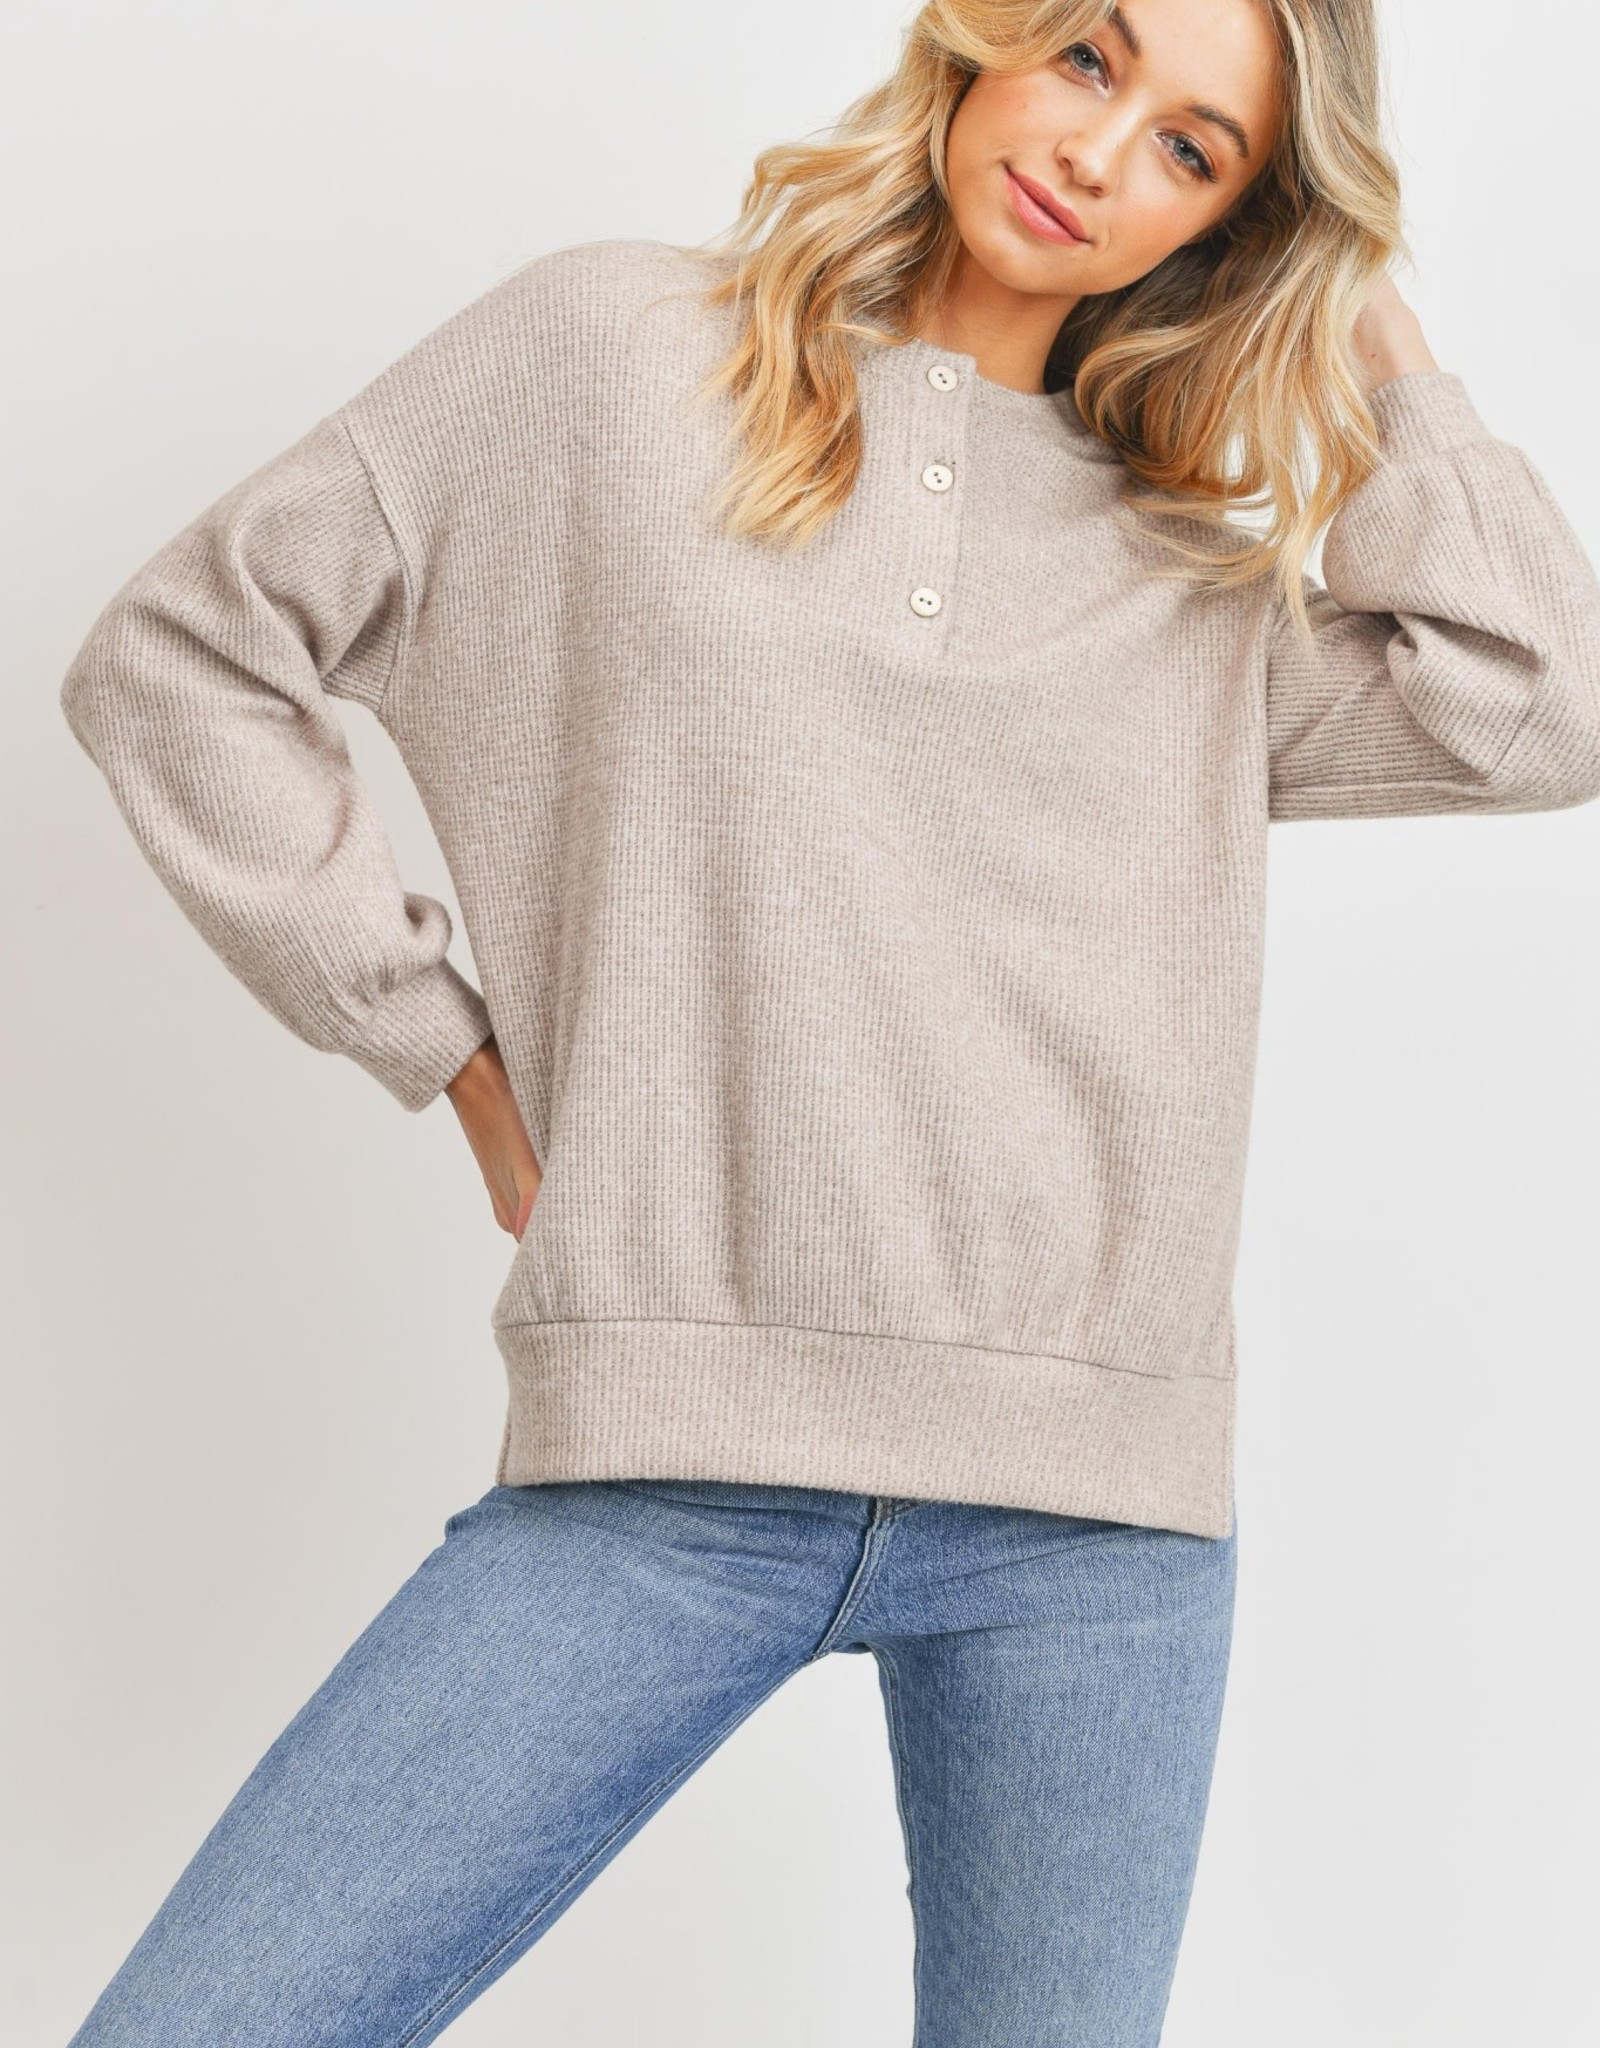 Miss Bliss Balloon Sleeve Henley Thermal Top- Taupe